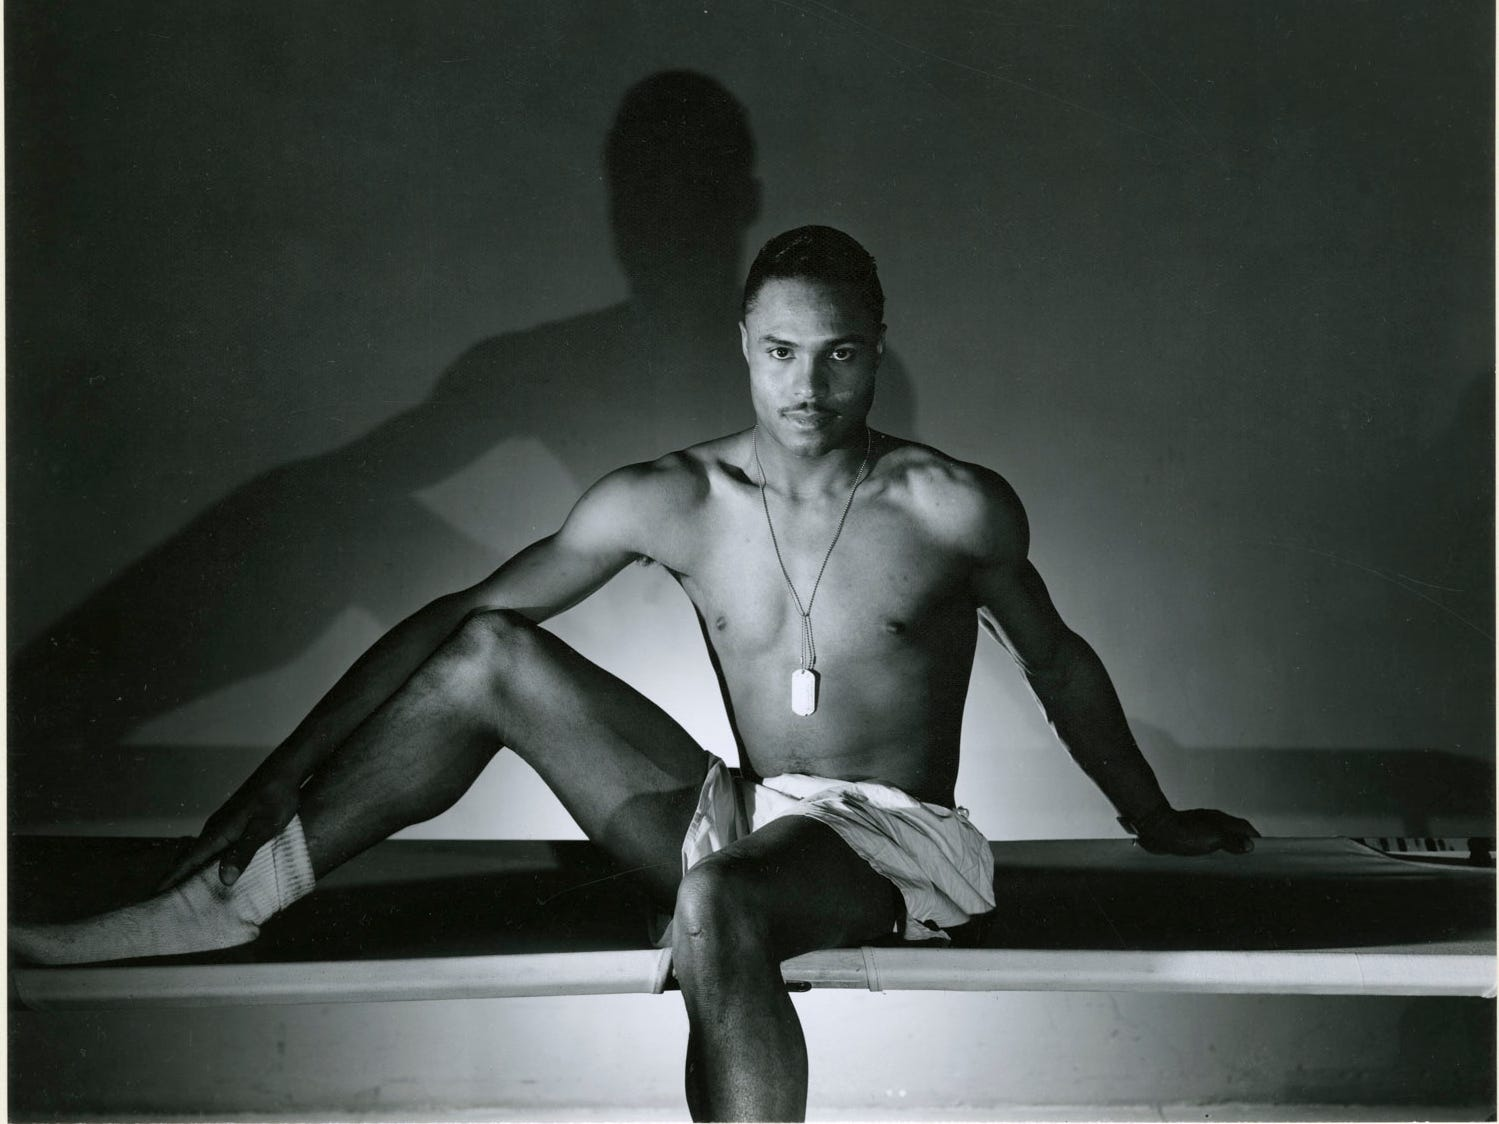 "George Platt Lynes (American, 1907–1955), Name Withheld, 1943, gelatin silver print, 7-1/2 × 9 in.  ""Sensual / Sexual / Social:  The Photography of George Platt Lynes"" exhibit will be at Newfields, Sept. 30, 2018 through Feb. 24, 2019.  Photo is from the Collections of the Kinsey Institute, Indiana University.  © Estate of George Platt Lynes."